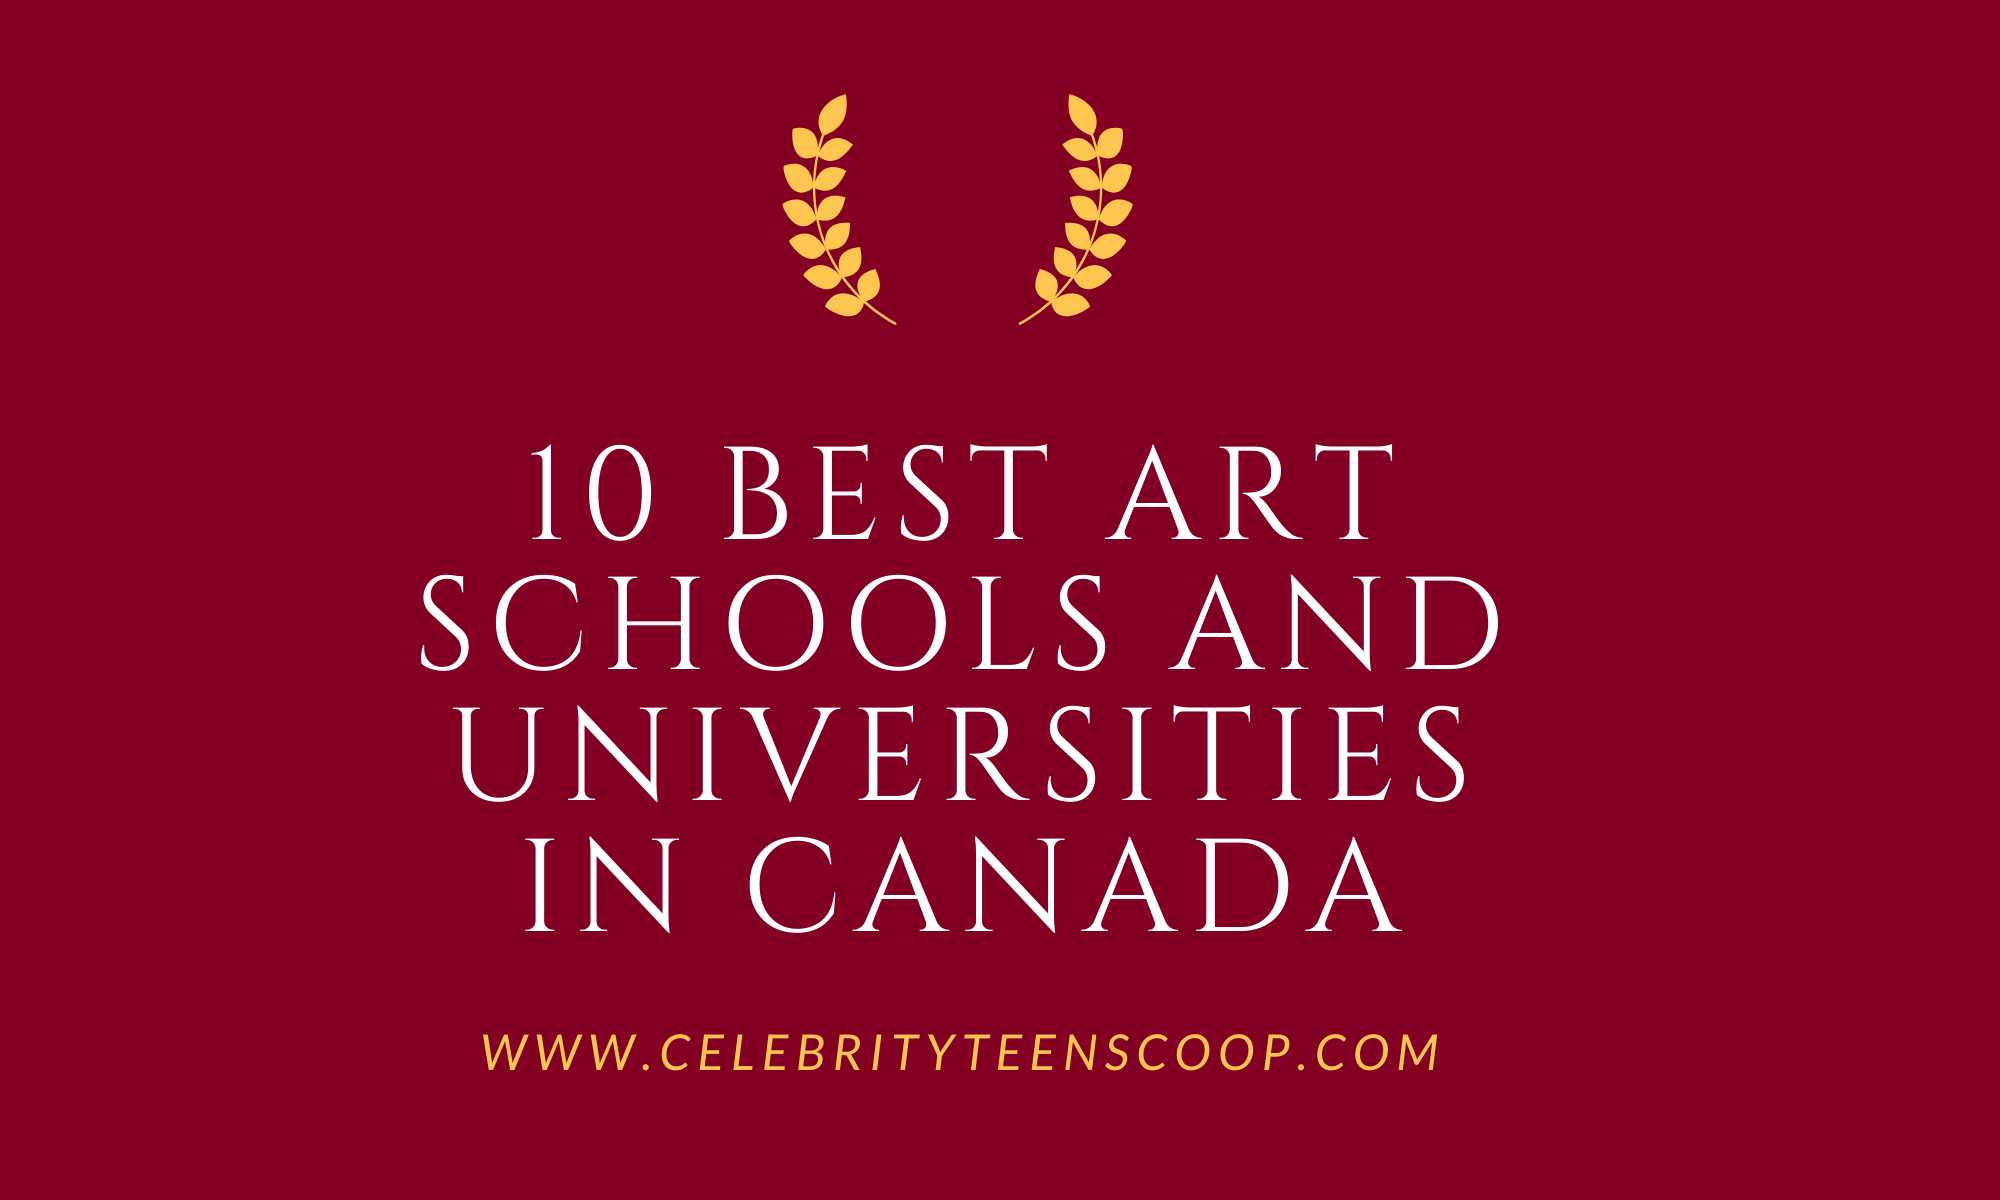 10 Best Art Schools And Universities in Canada